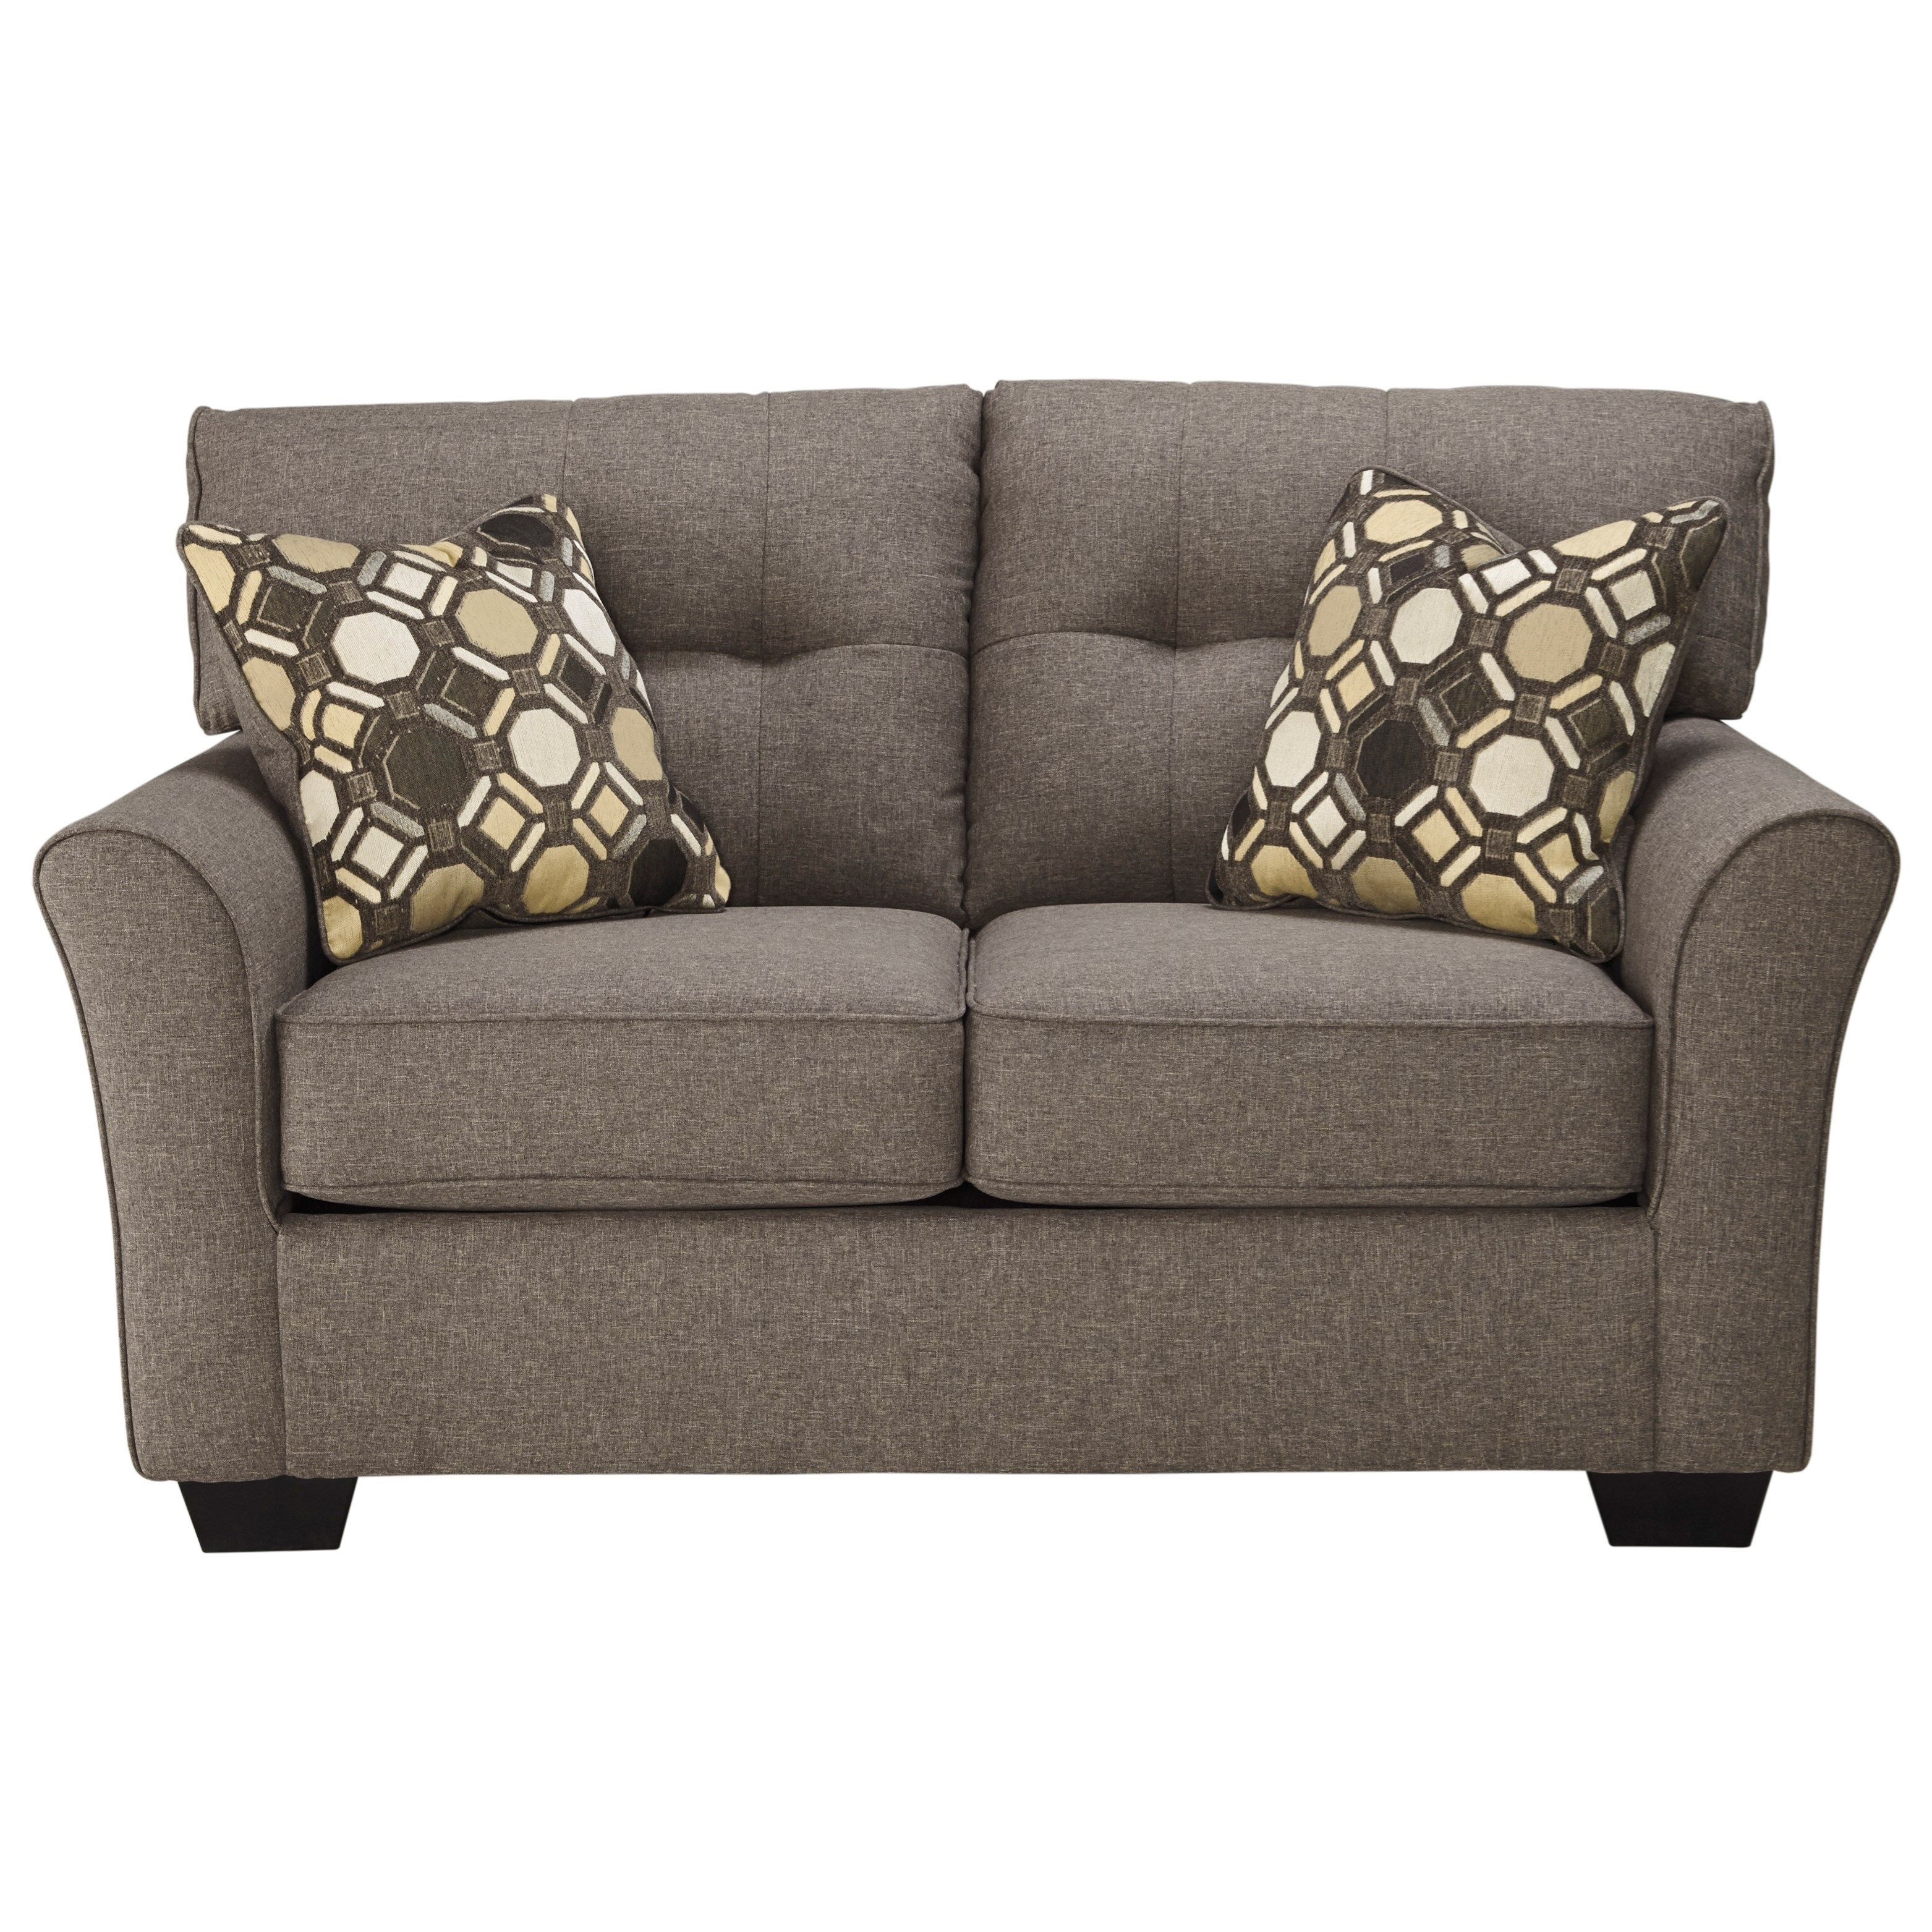 Good Tibbee   Slate   Loveseat By Signature Design By Ashley. Get Your Tibbee    Slate   Loveseat At Furniture Factory Outlet, Warsaw IN Furniture Store.